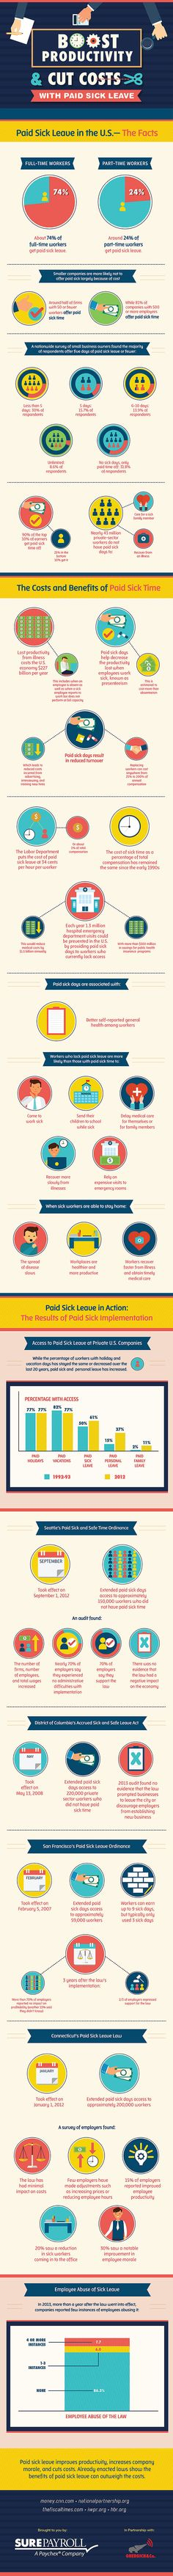 using e q librium to deal office politics take it personel boost productivity and cut costs paid sick leave infographic business productivity